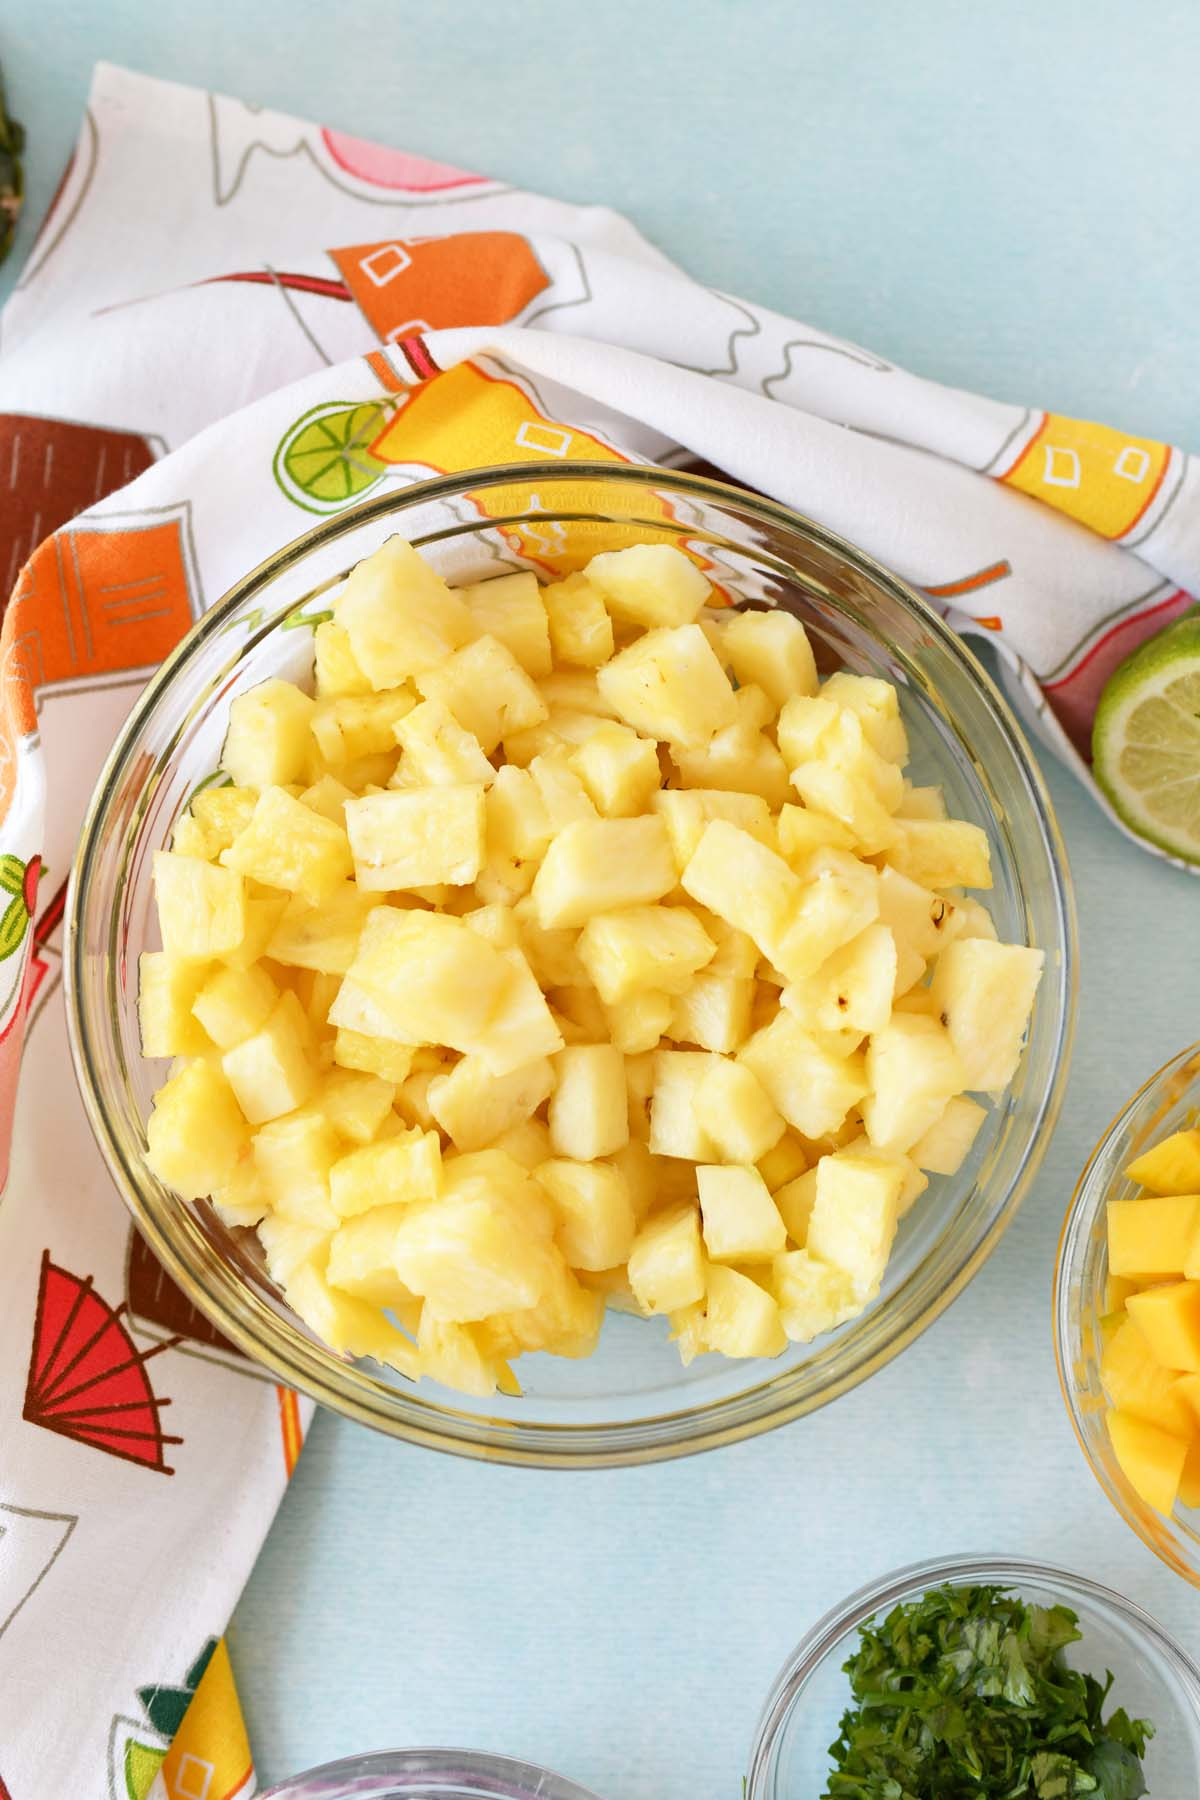 Cubed pineapple for salsa in a large glass bowl on a blue table.